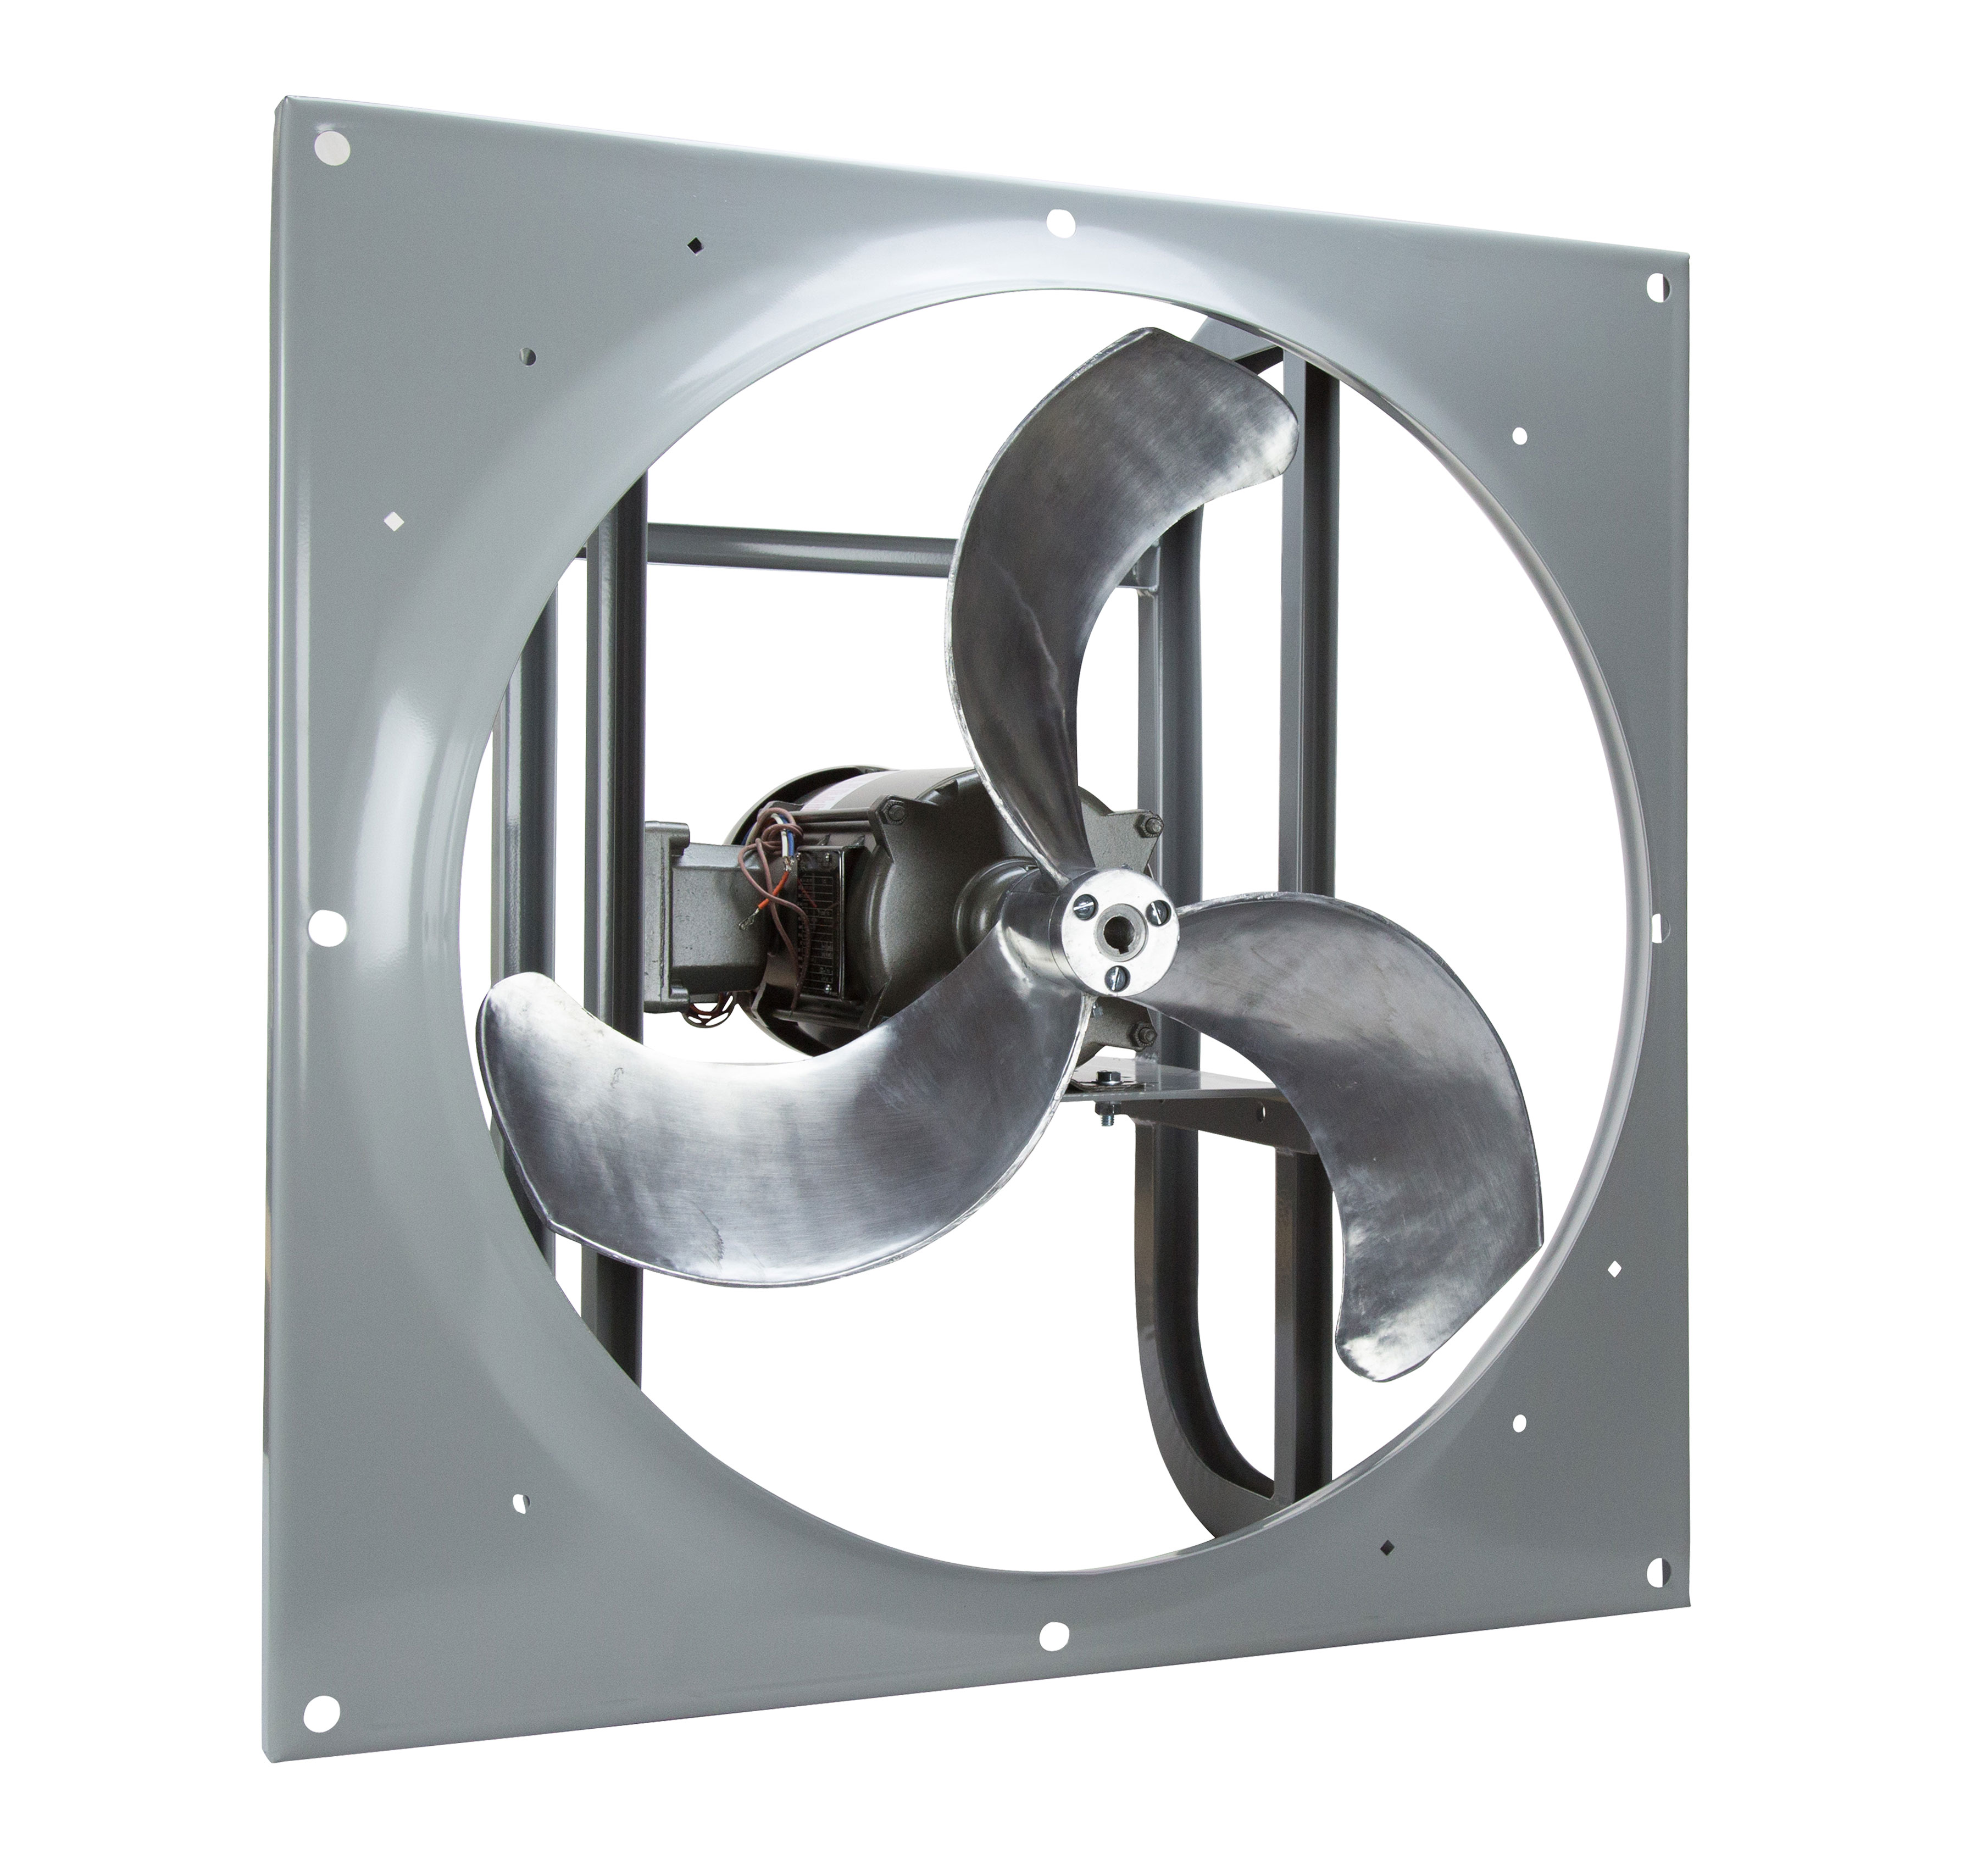 Electronics Releases an Explosion Proof High Pressure Ventilation Fan #5B4E48